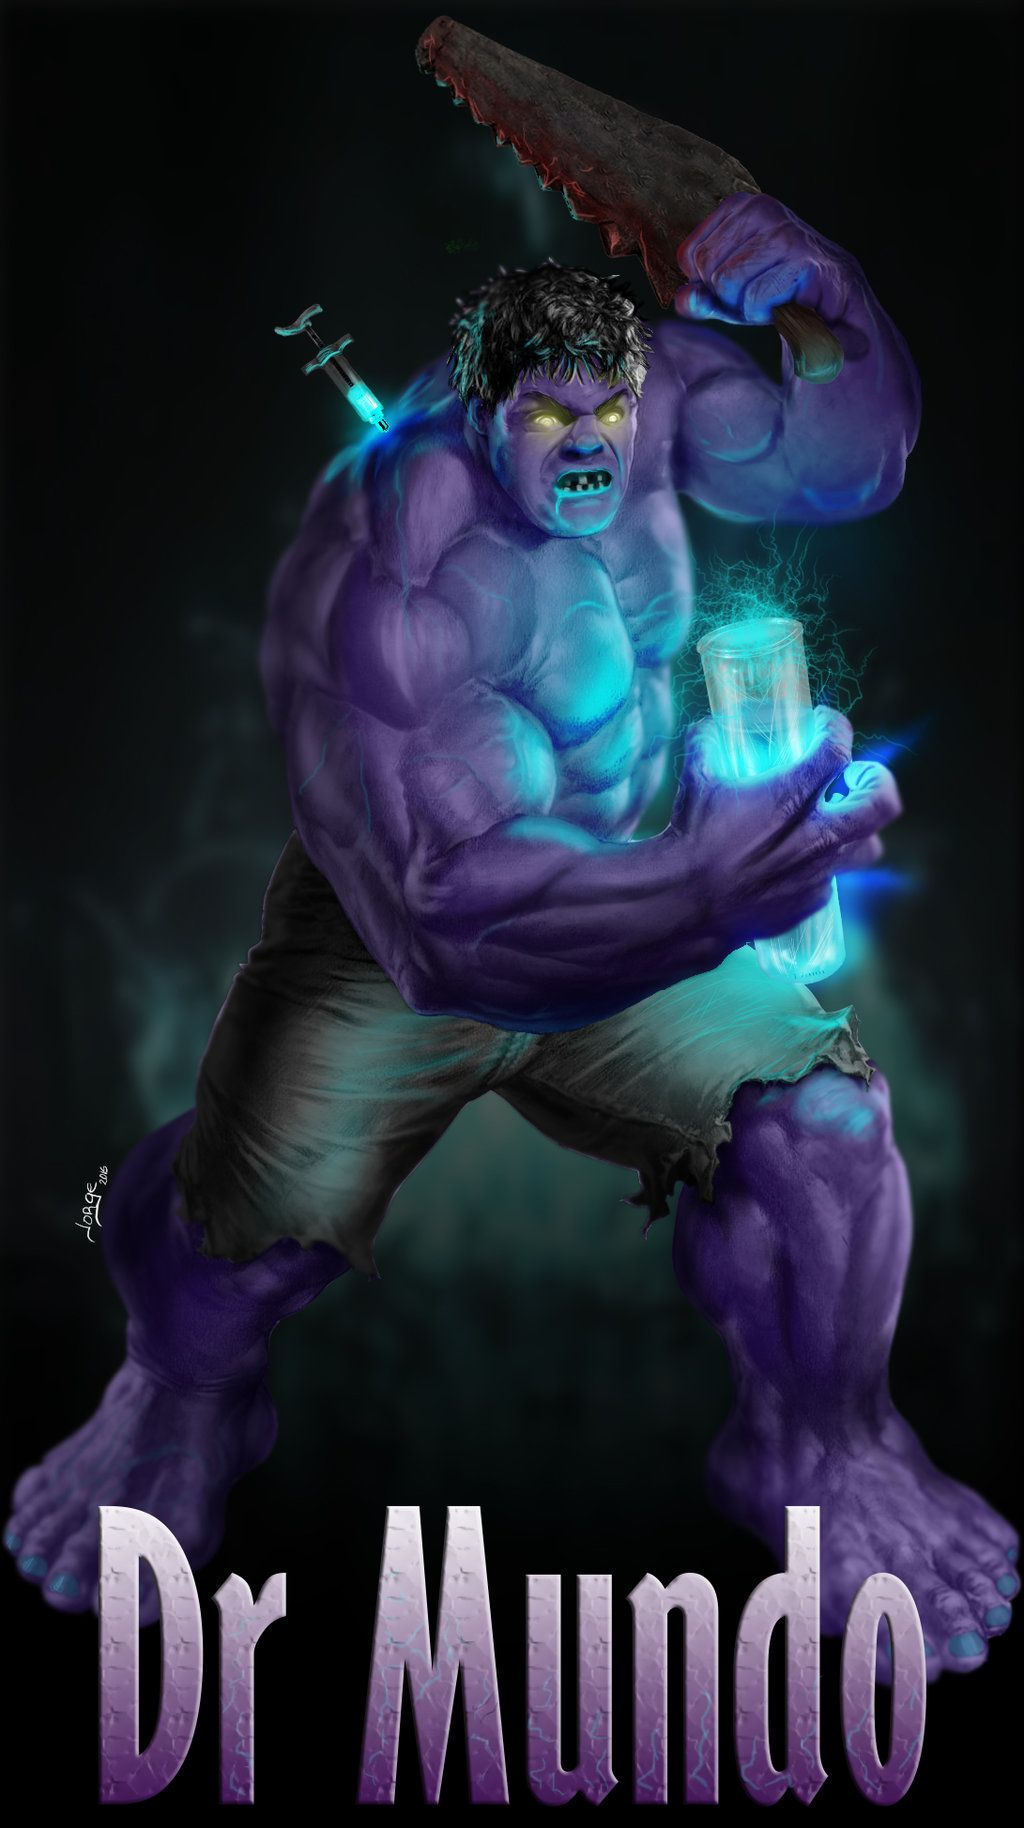 #Hulk #Fan #Art. (Dr mundo: League of Legends) By: Jorgux. (THE * 5 * STÅR * ÅWARD * OF: * AW YEAH, IT'S MAJOR ÅWESOMENESS!!!™)[THANK Ü 4 PINNING!!!<·><]<©>ÅÅÅ+(OB4E)